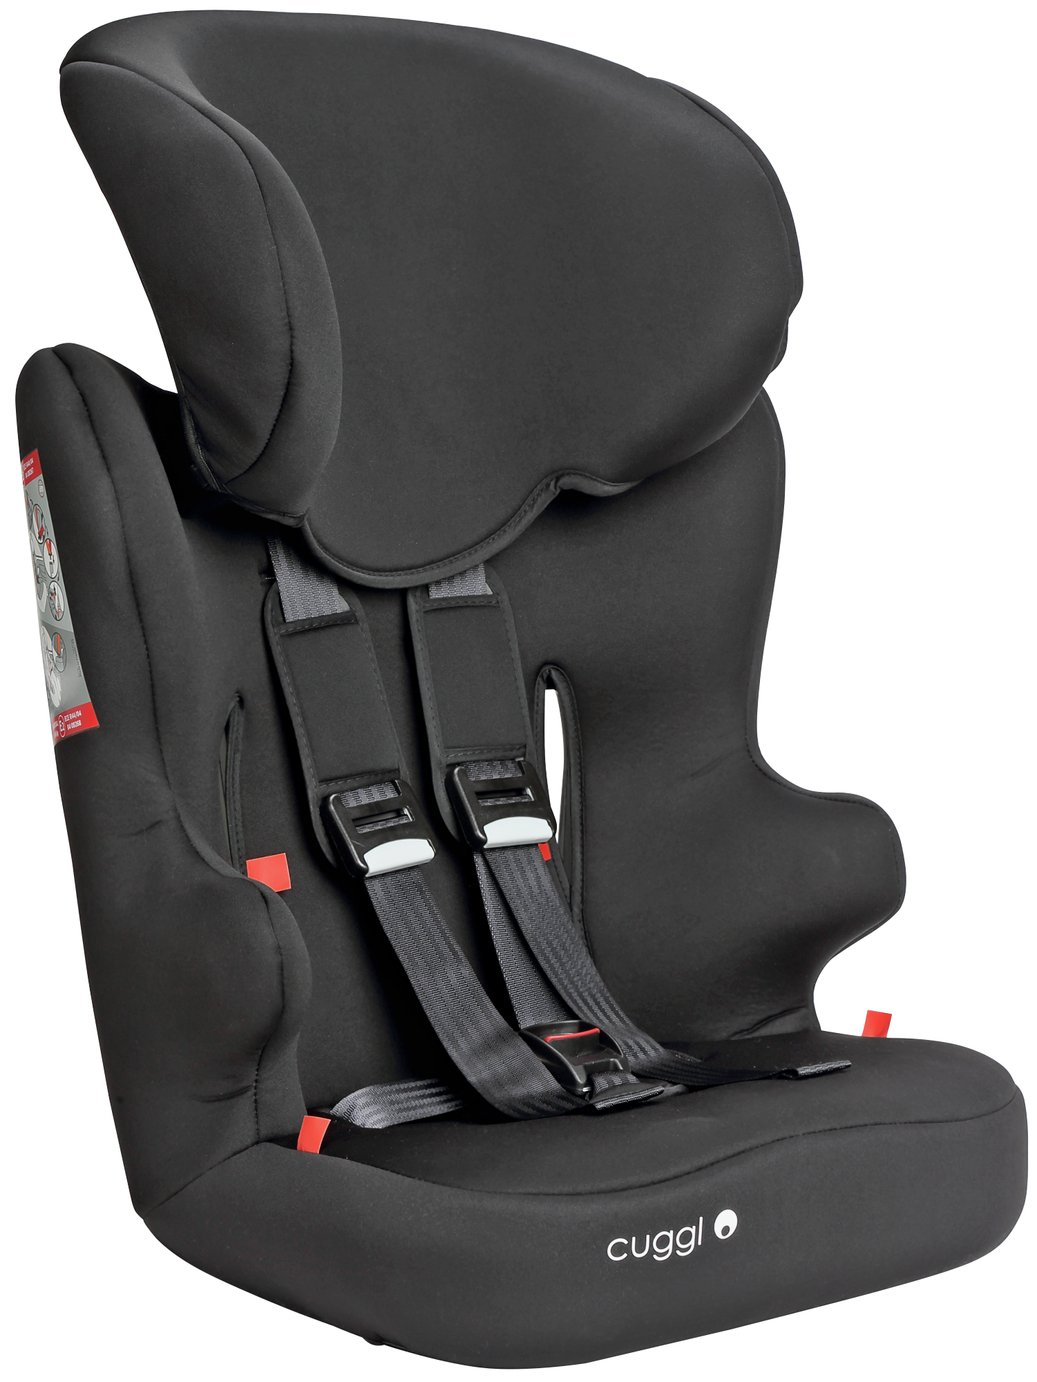 Cuggl Chaffinch Group 1/2/3 Car Seat - Black